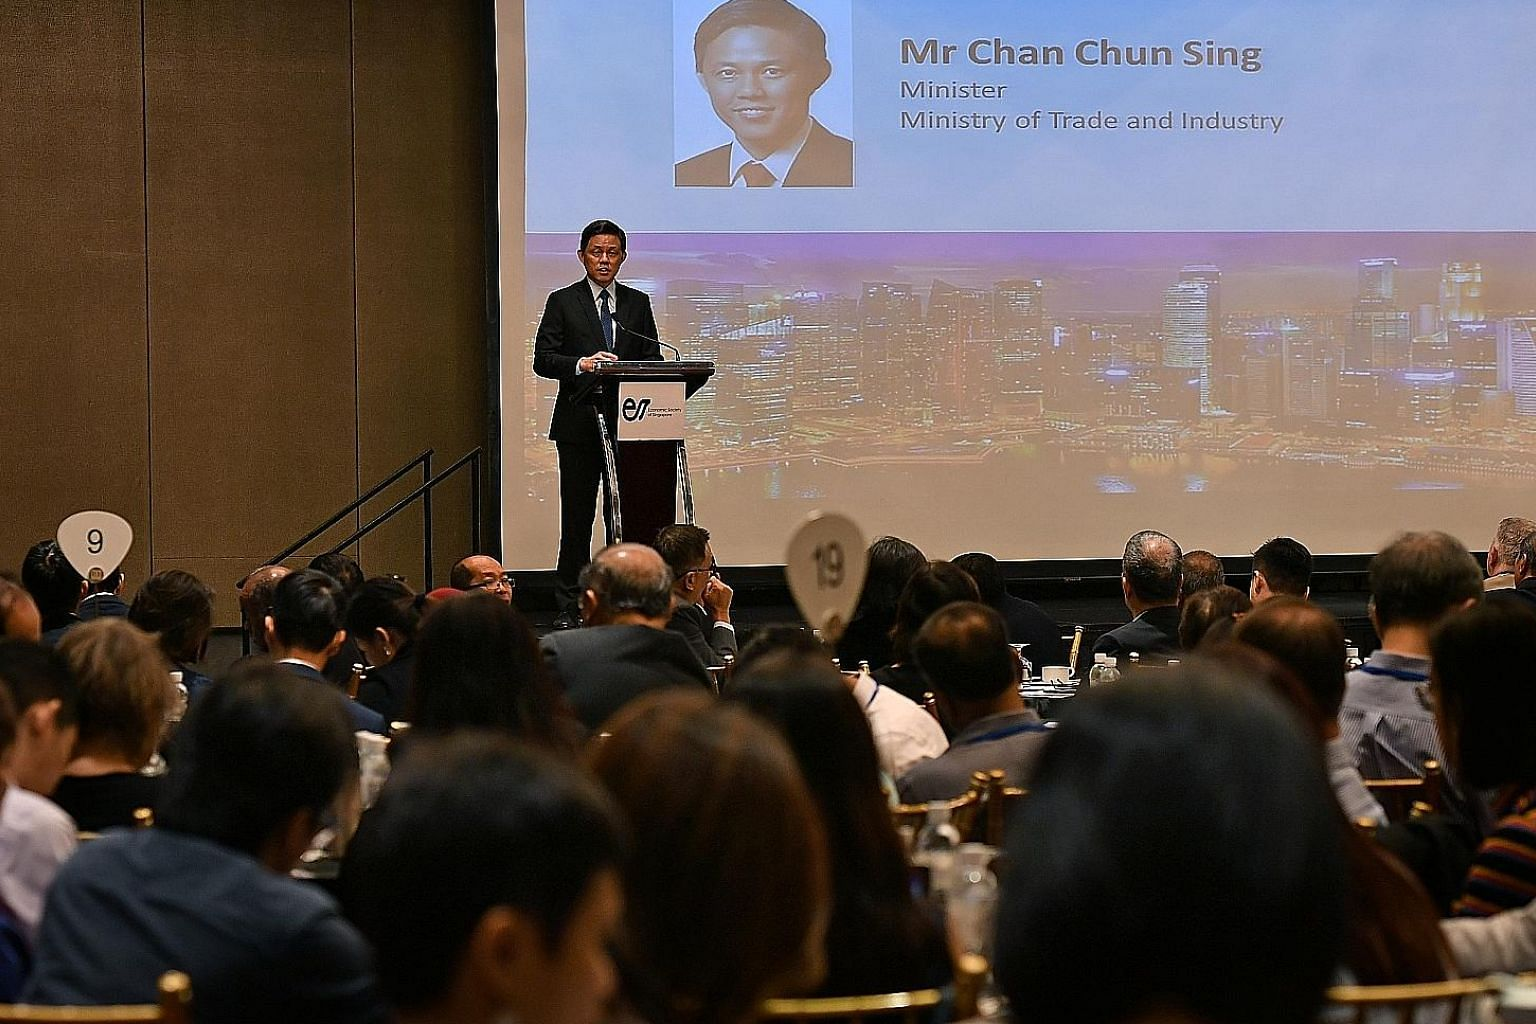 Trade and Industry Minister Chan Chun Sing, speaking at the Singapore Economic Policy Forum at Mandarin Orchard Singapore yesterday, said he challenged A*Star to seek out 10 large firms, 10 progressive trade associations and chambers, and 10 governme